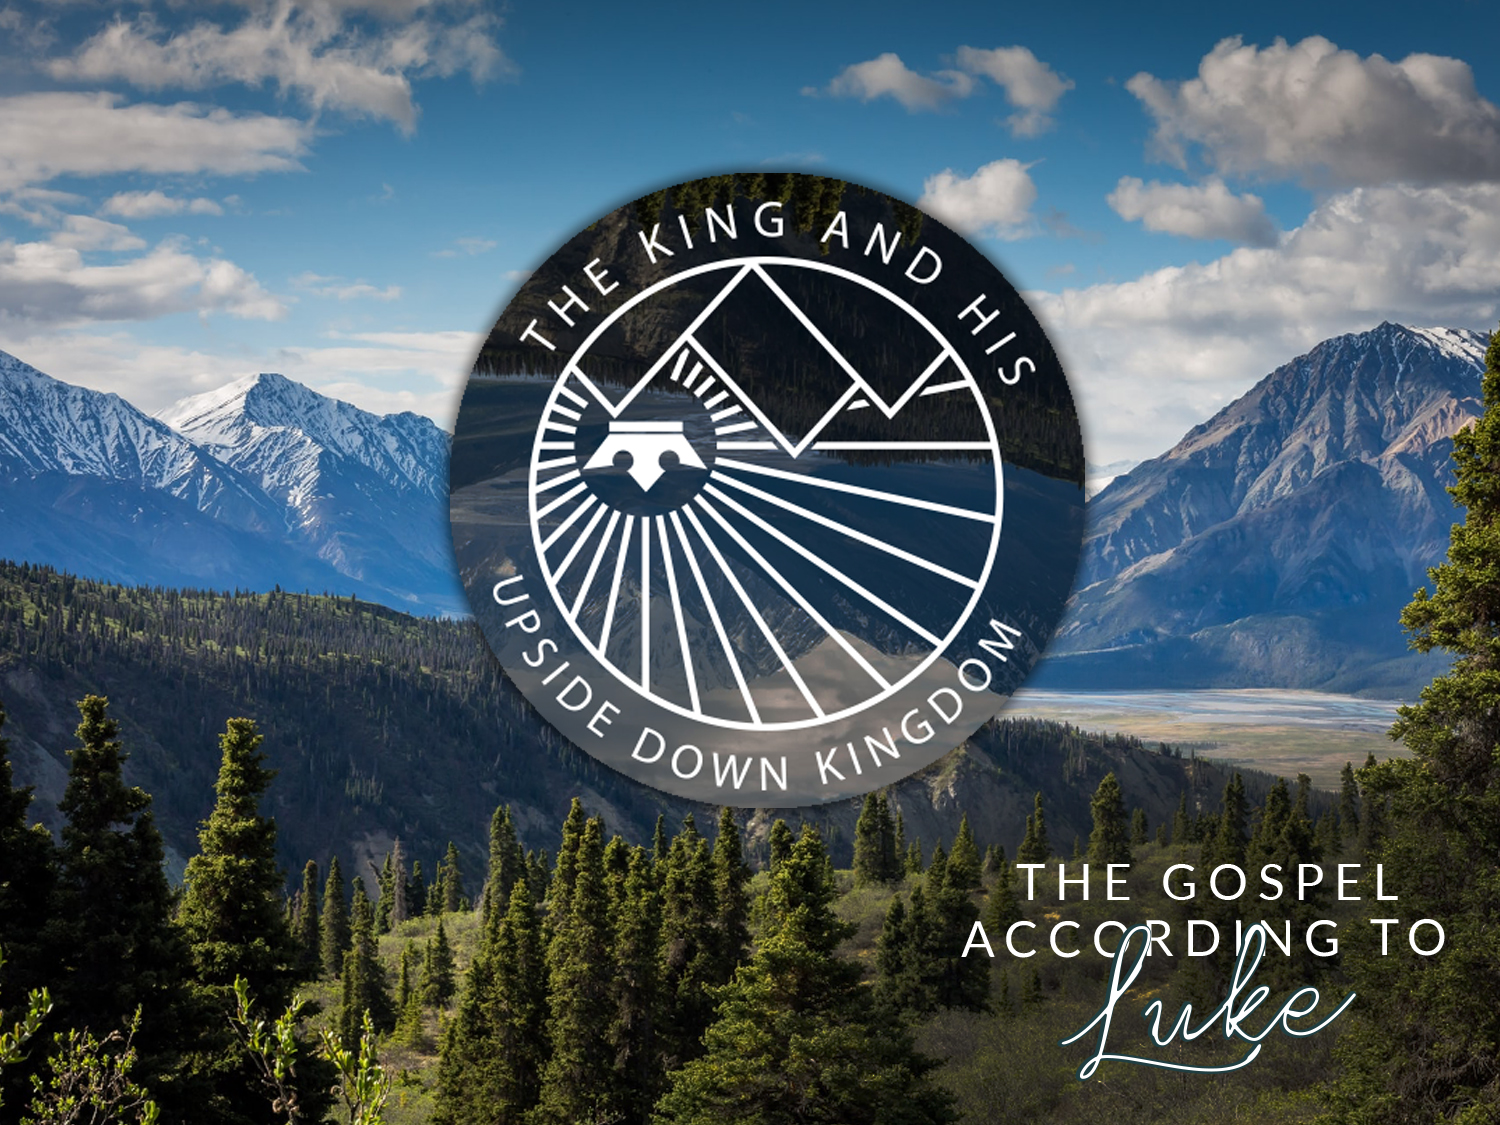 The Gospel of Luke: The King and His Upside Down Kingdom